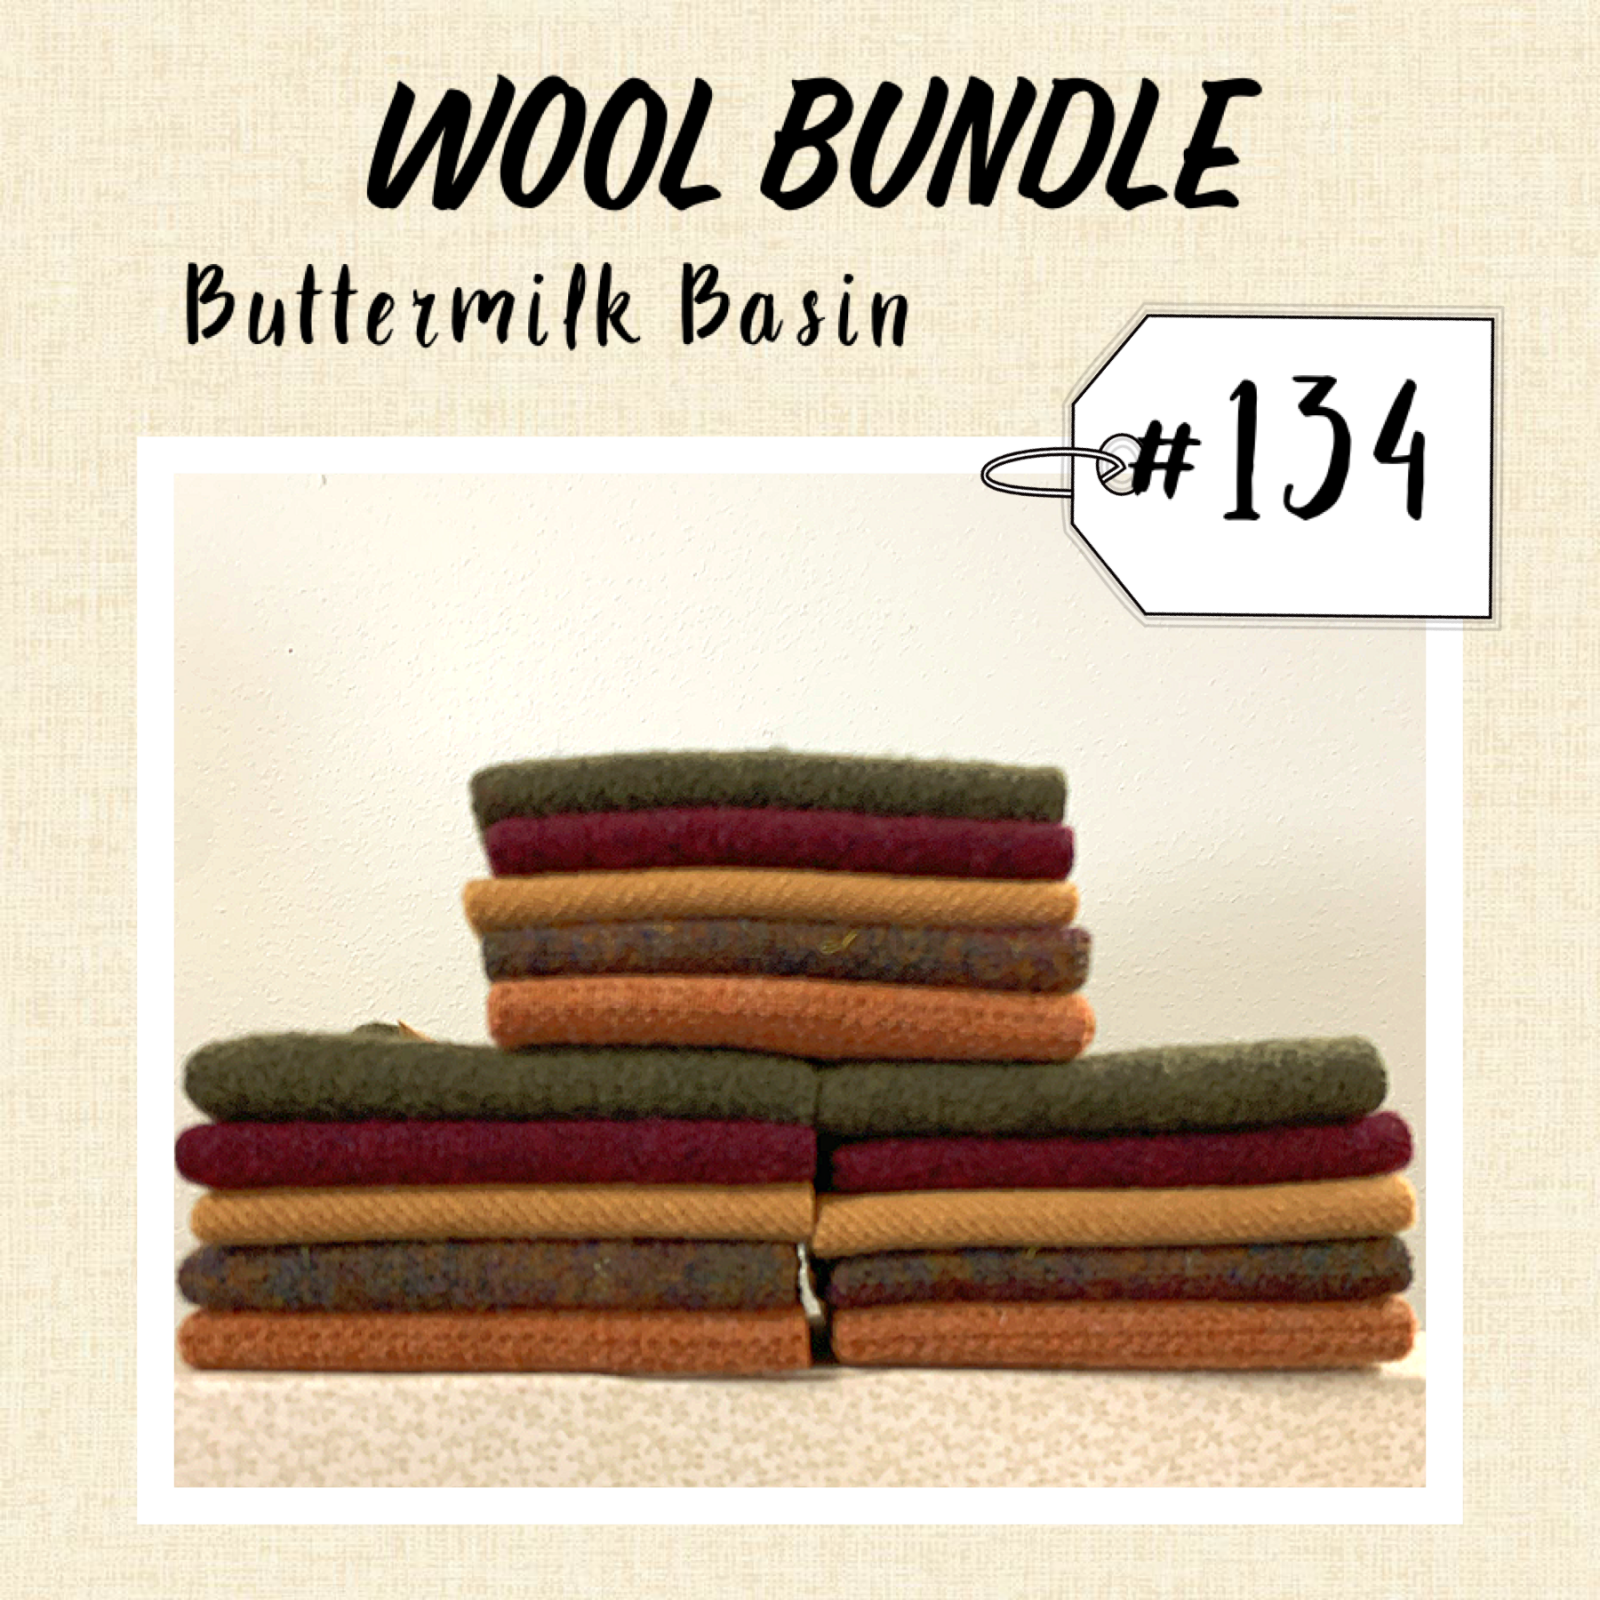 Wool Bundle #134B